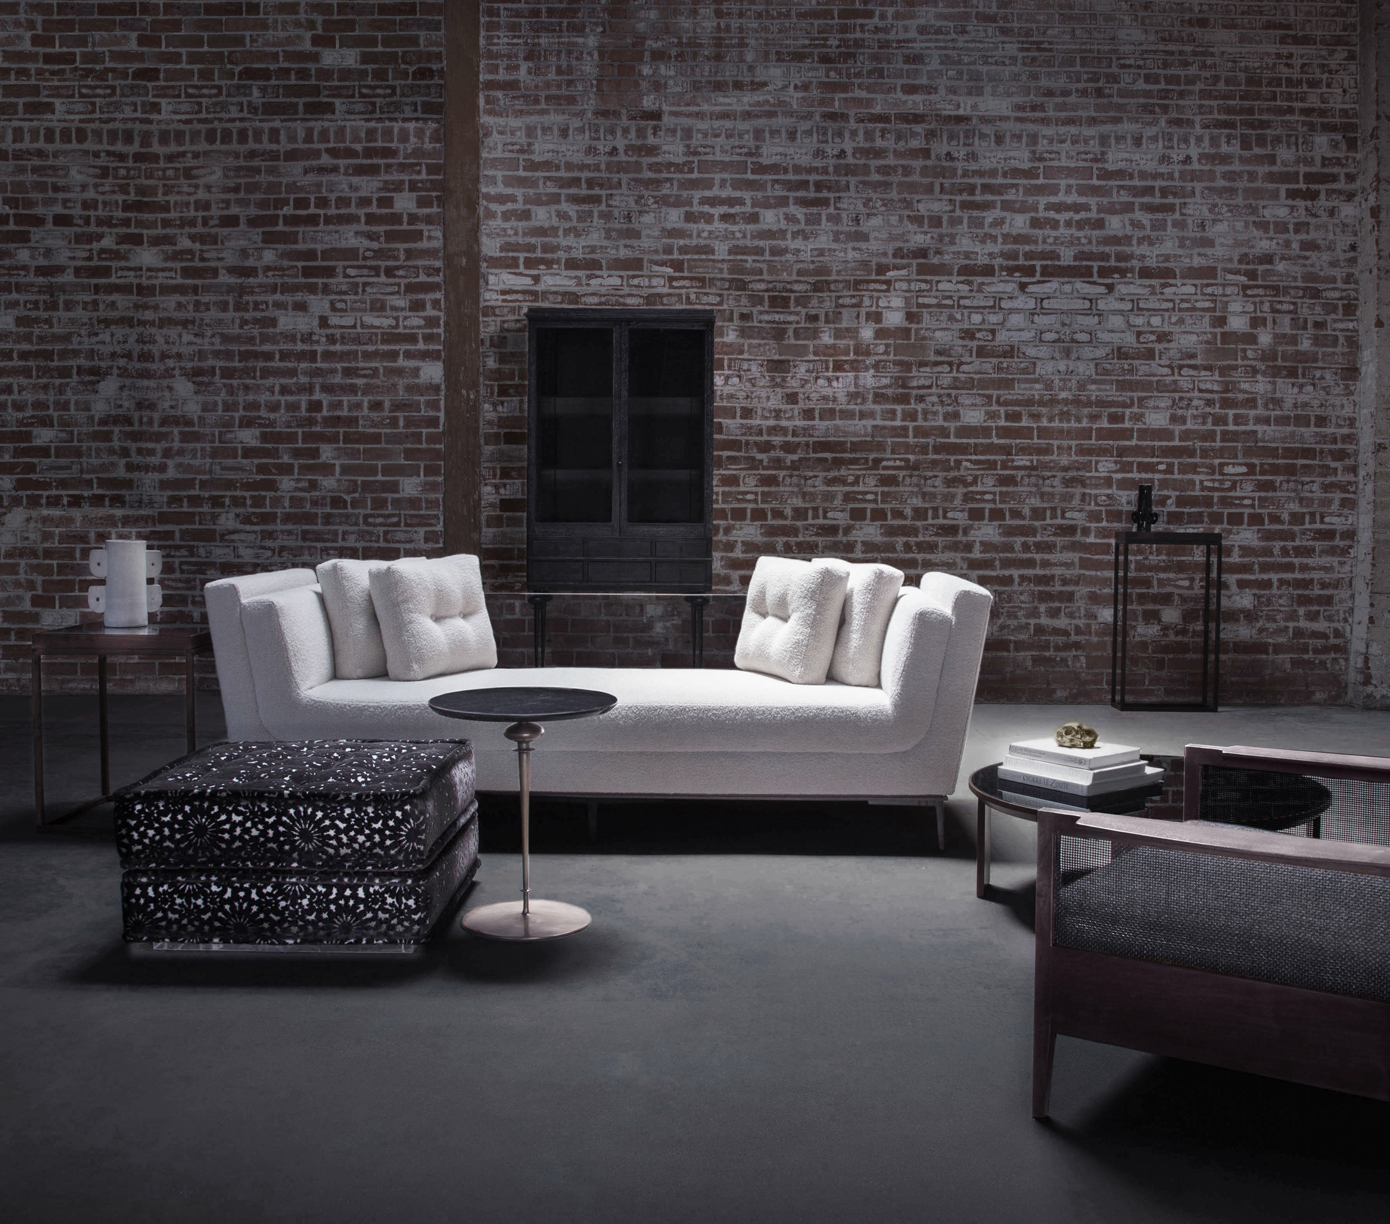 Blending their disparate backgrounds in classical furniture design and punk rock fashion, partners Scott Baker and Mary Ann Hesseldenz developedBaker Hesseldenz Studioto create sophisticated pieces across a variety of categories, including seating, cabinetry, and tables.